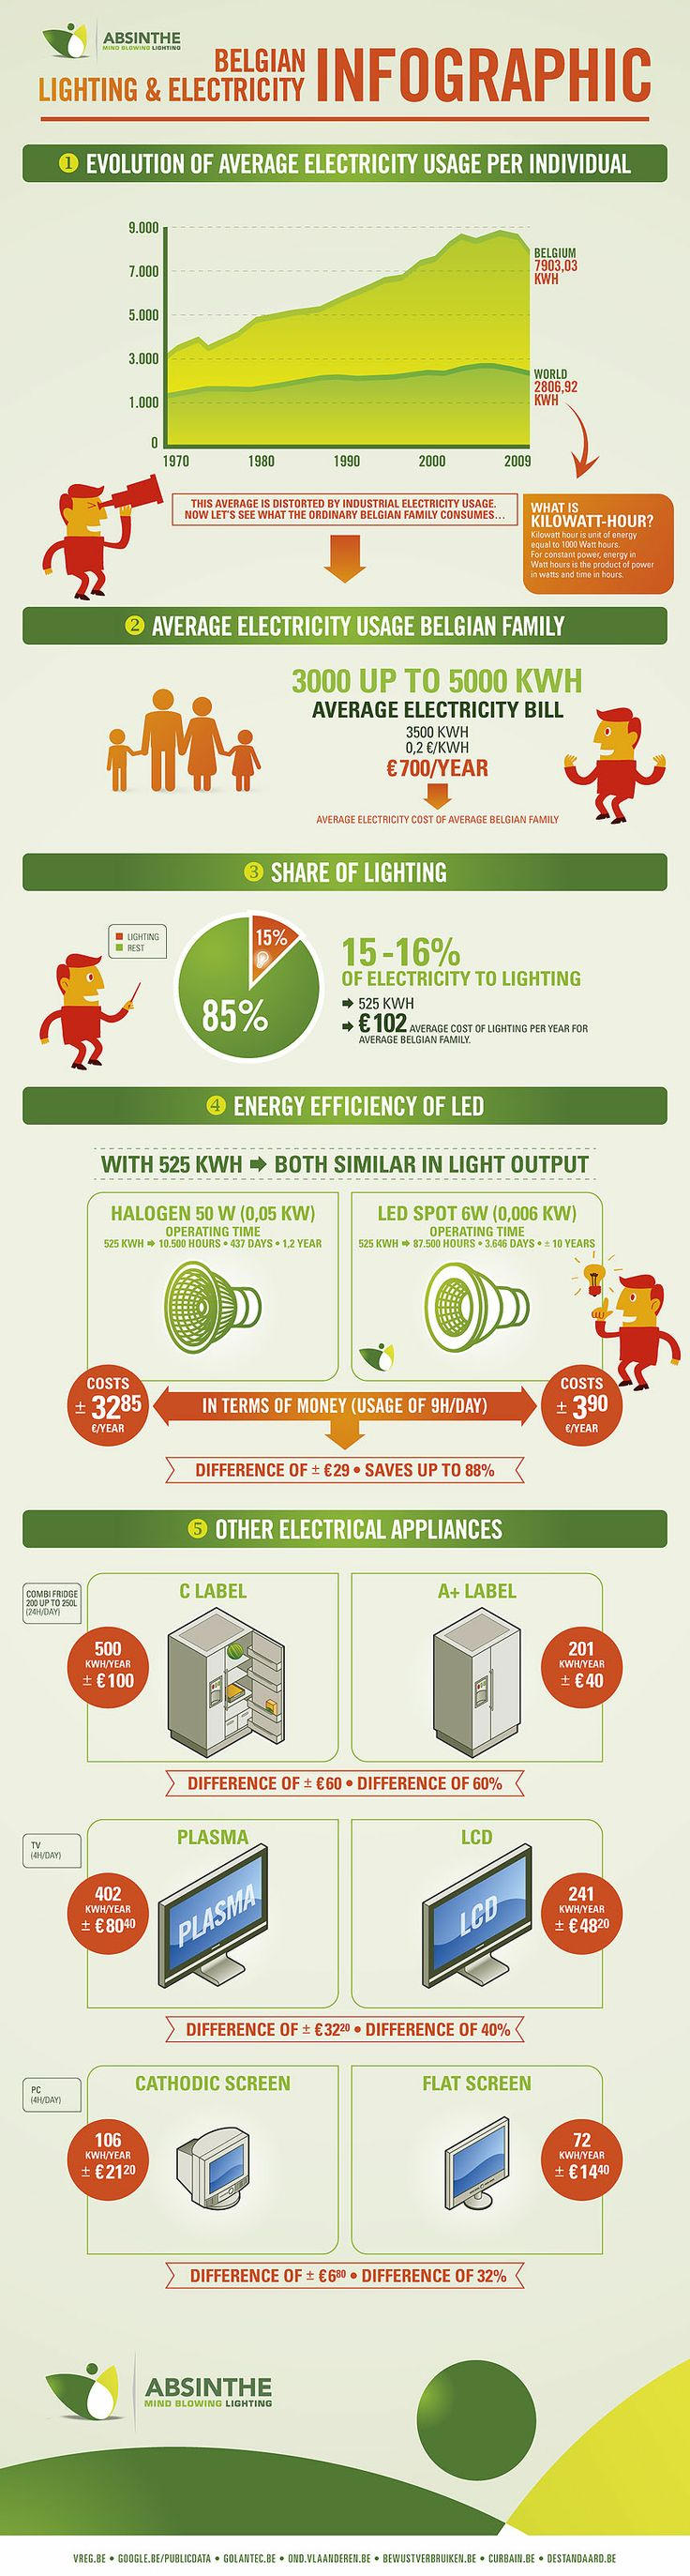 Belgian Lighting & Electricity Usage Infographic